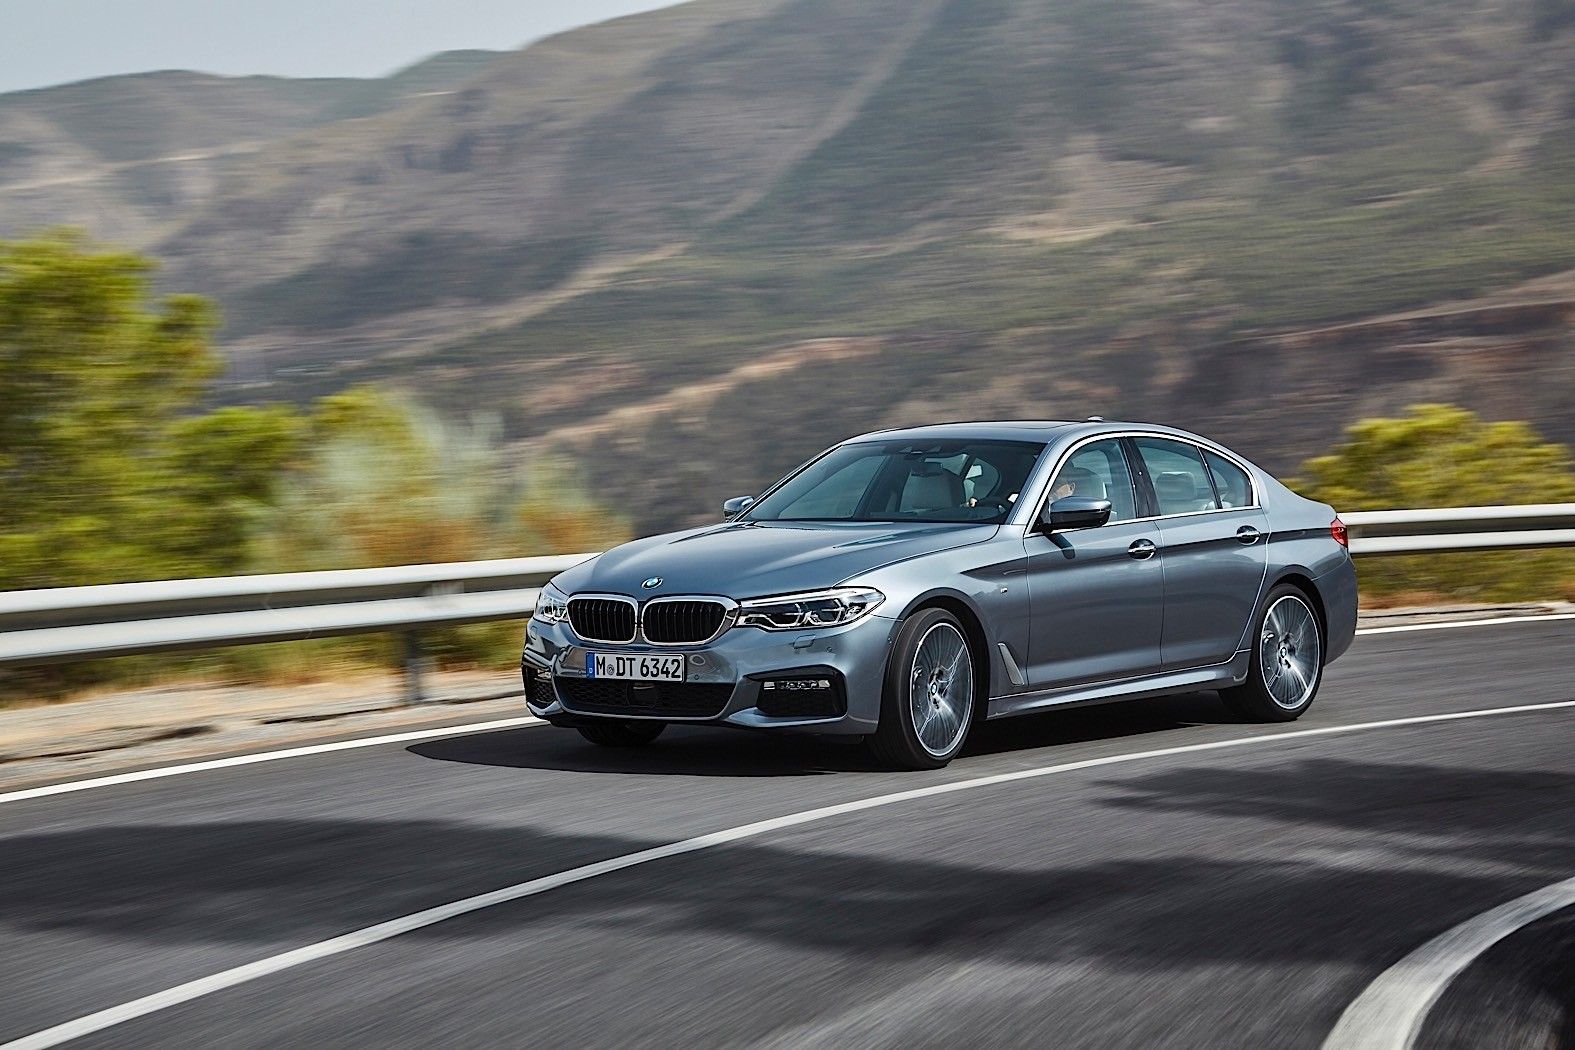 2017 bmw 5 series leaked brochure reveals prices start at 36 025 in the uk autoevolution. Black Bedroom Furniture Sets. Home Design Ideas